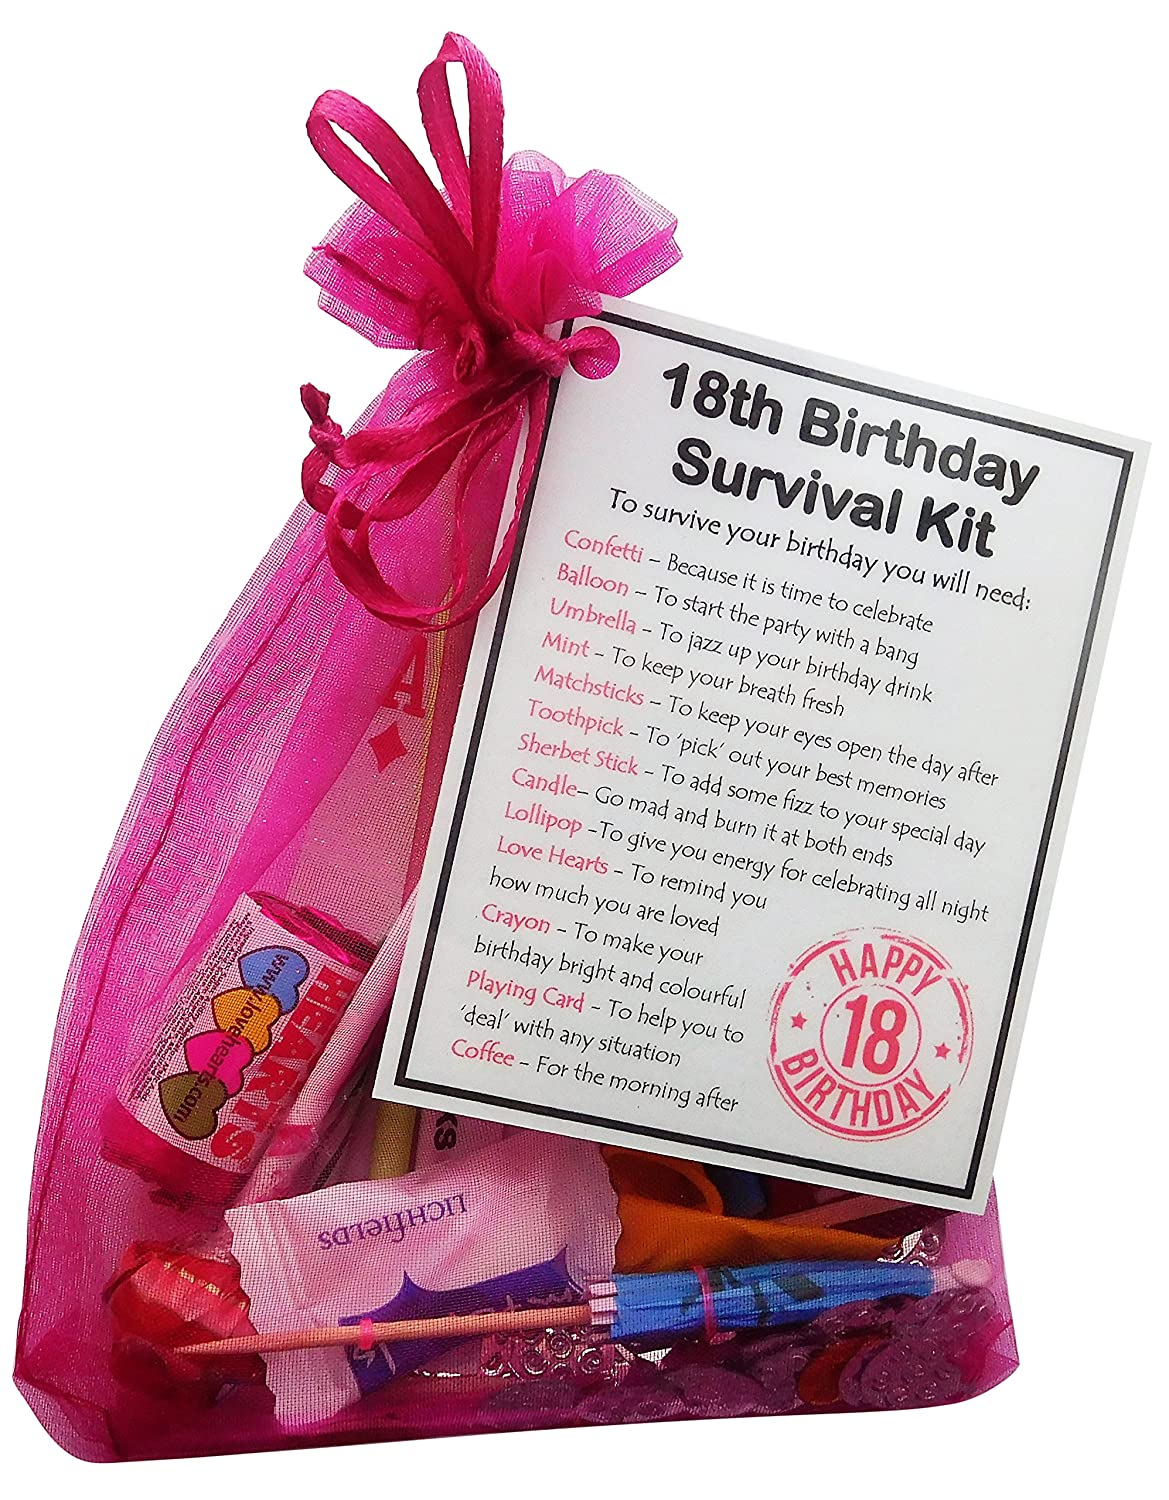 SMILE GIFTS UK 18th Birthday Gift- Unique Survival Kit (Hot Pink) - 18th birthday gift 18th birthday present 18th gift 18th present 18th birthday ...  sc 1 st  Amazon UK & SMILE GIFTS UK 18th Birthday Gift- Unique Survival Kit (Hot Pink ...